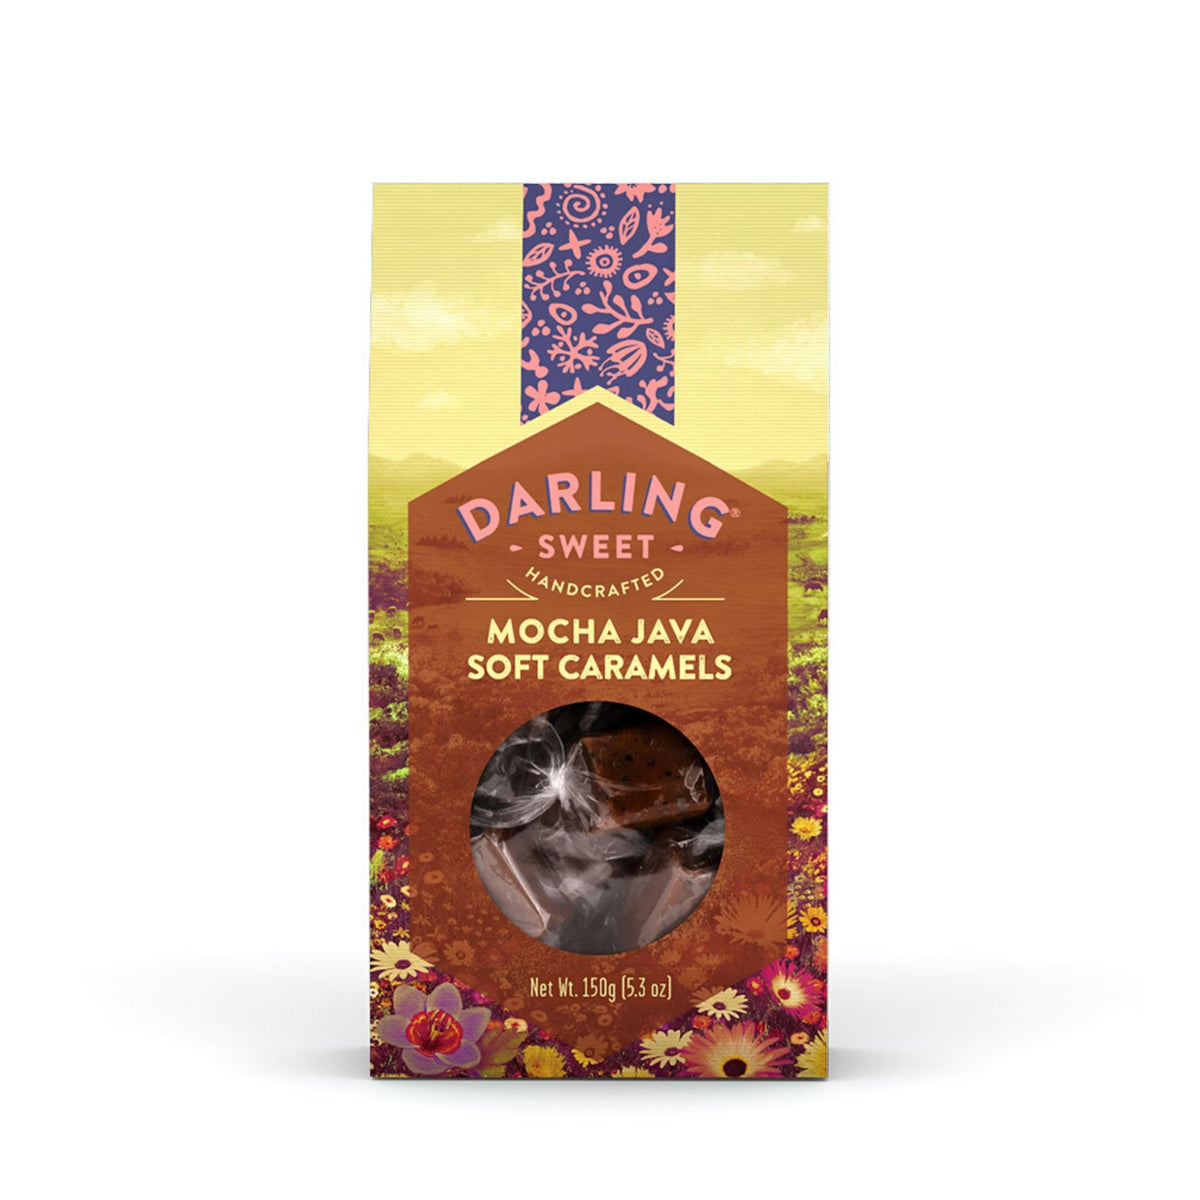 Darling Sweet Mocha Java Soft Caramels